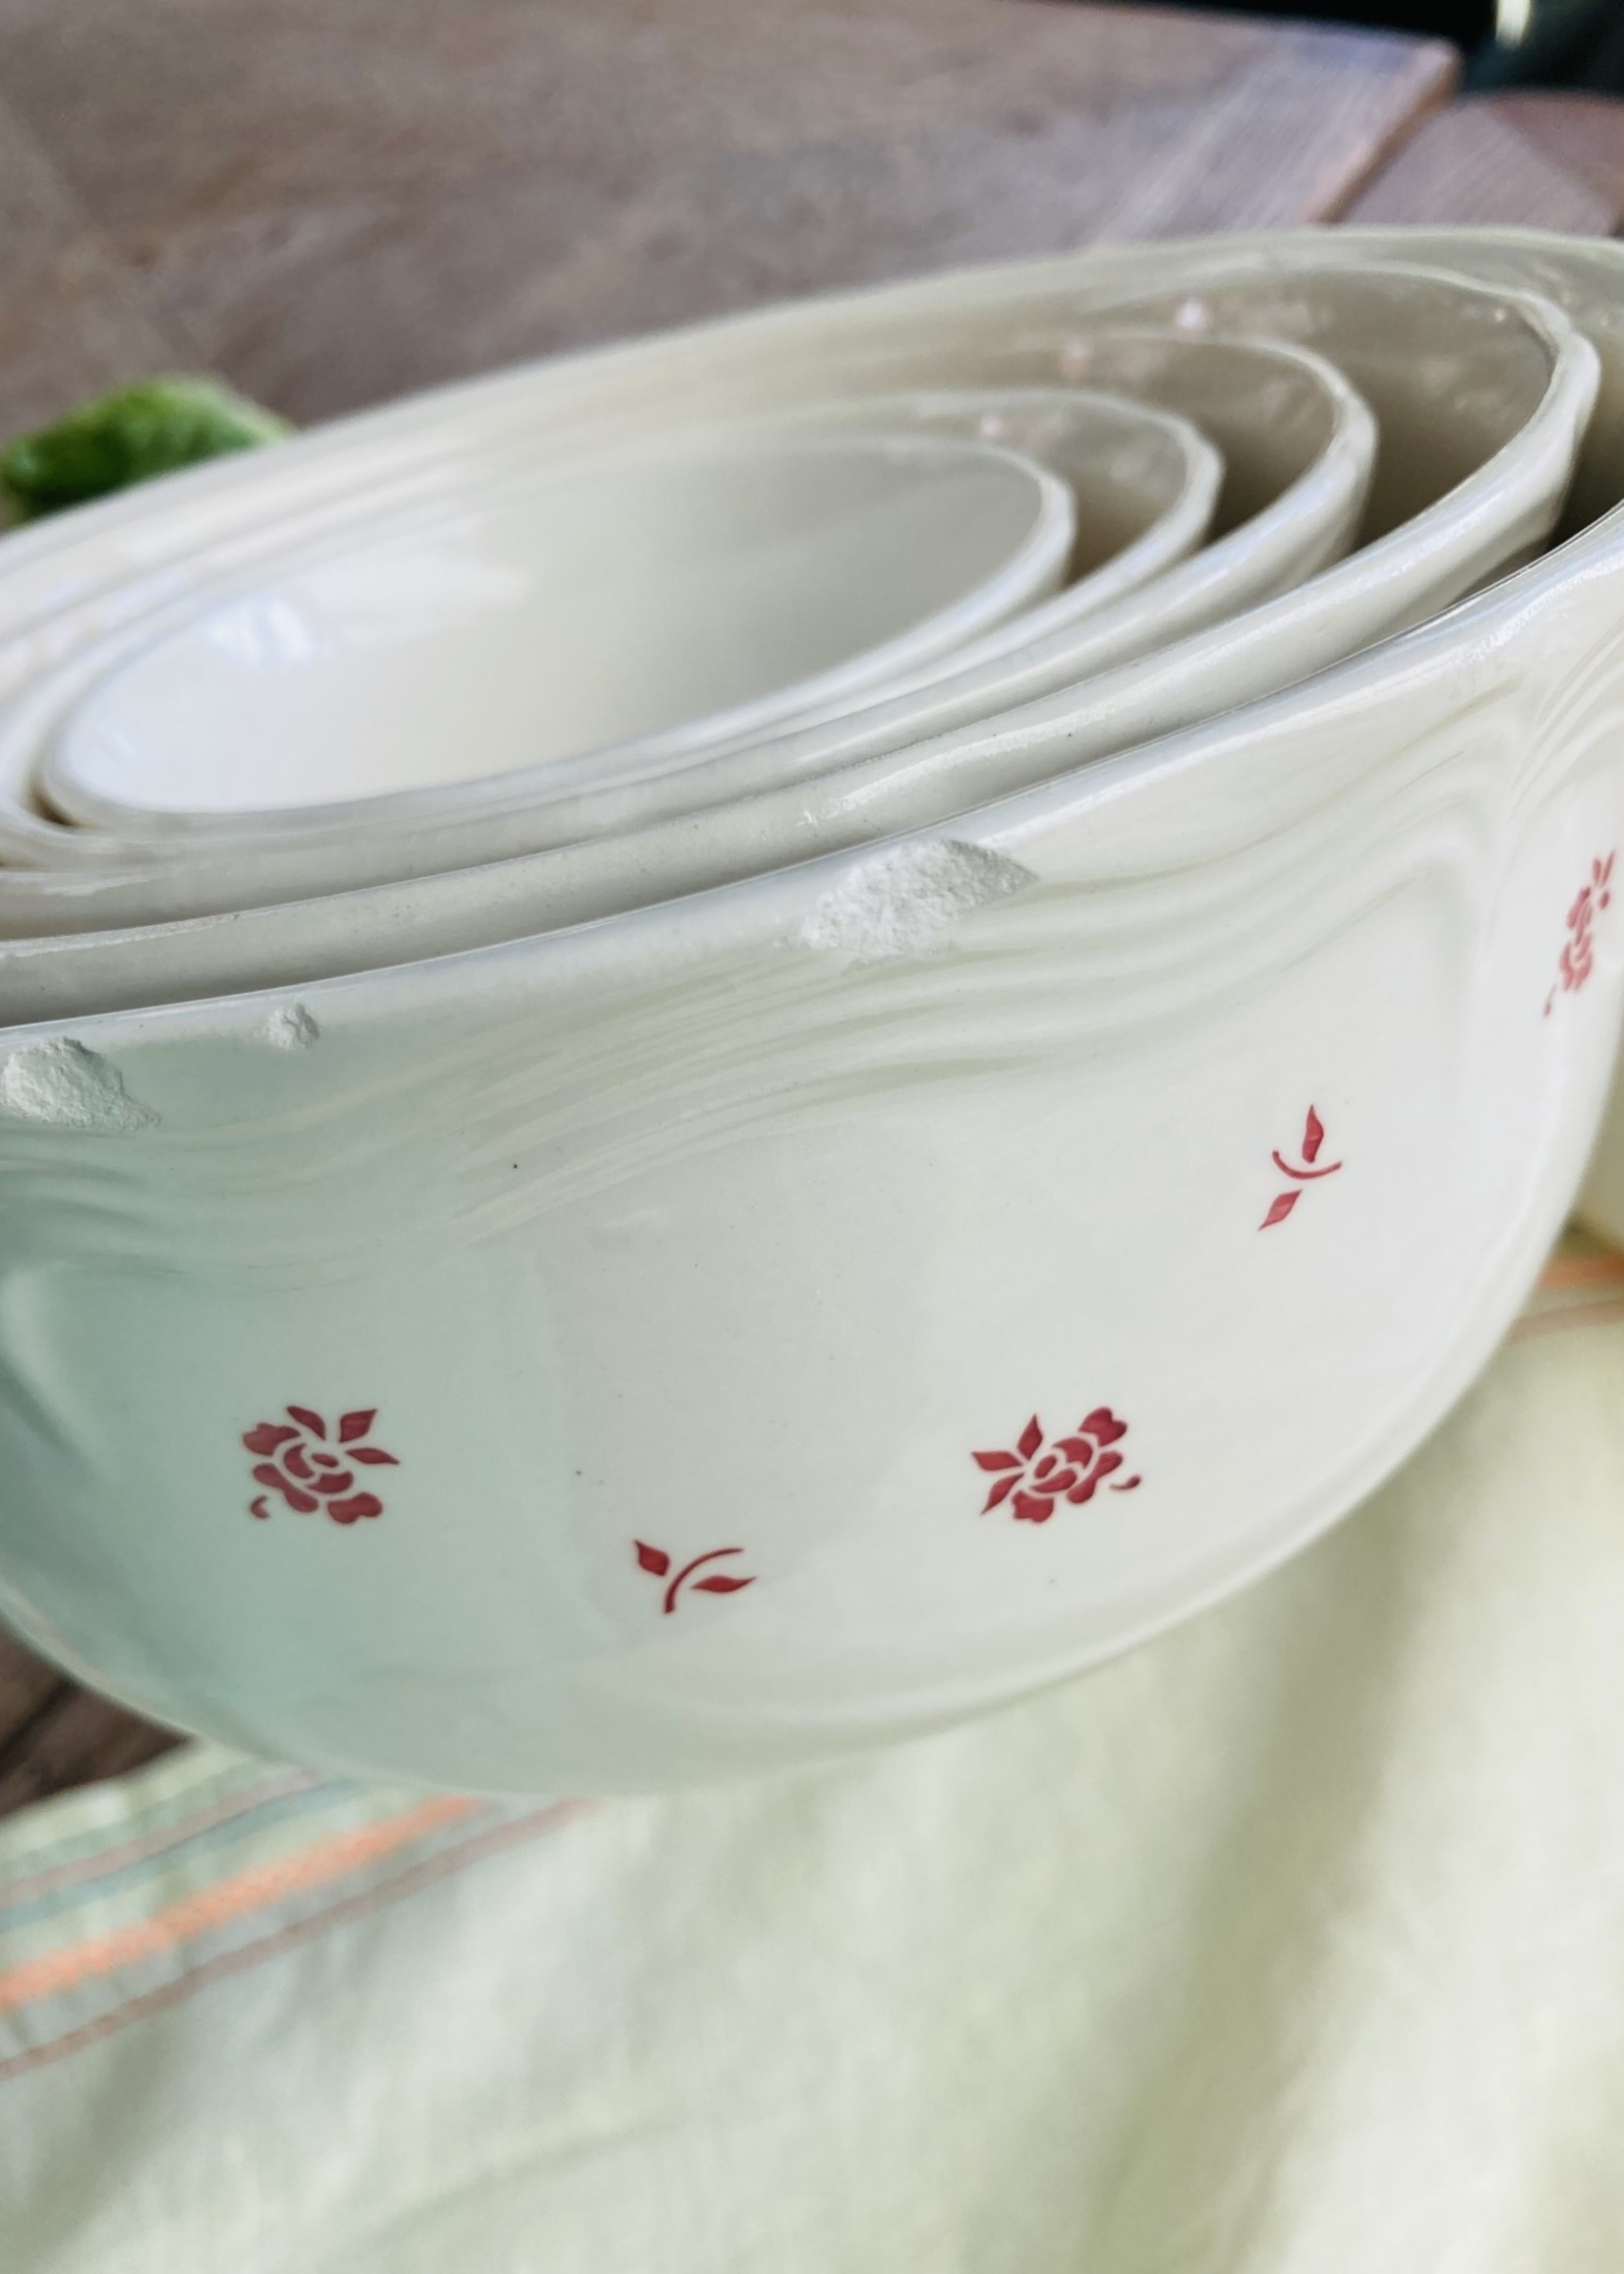 Antique vesting bowls with red flowers (set of 6)